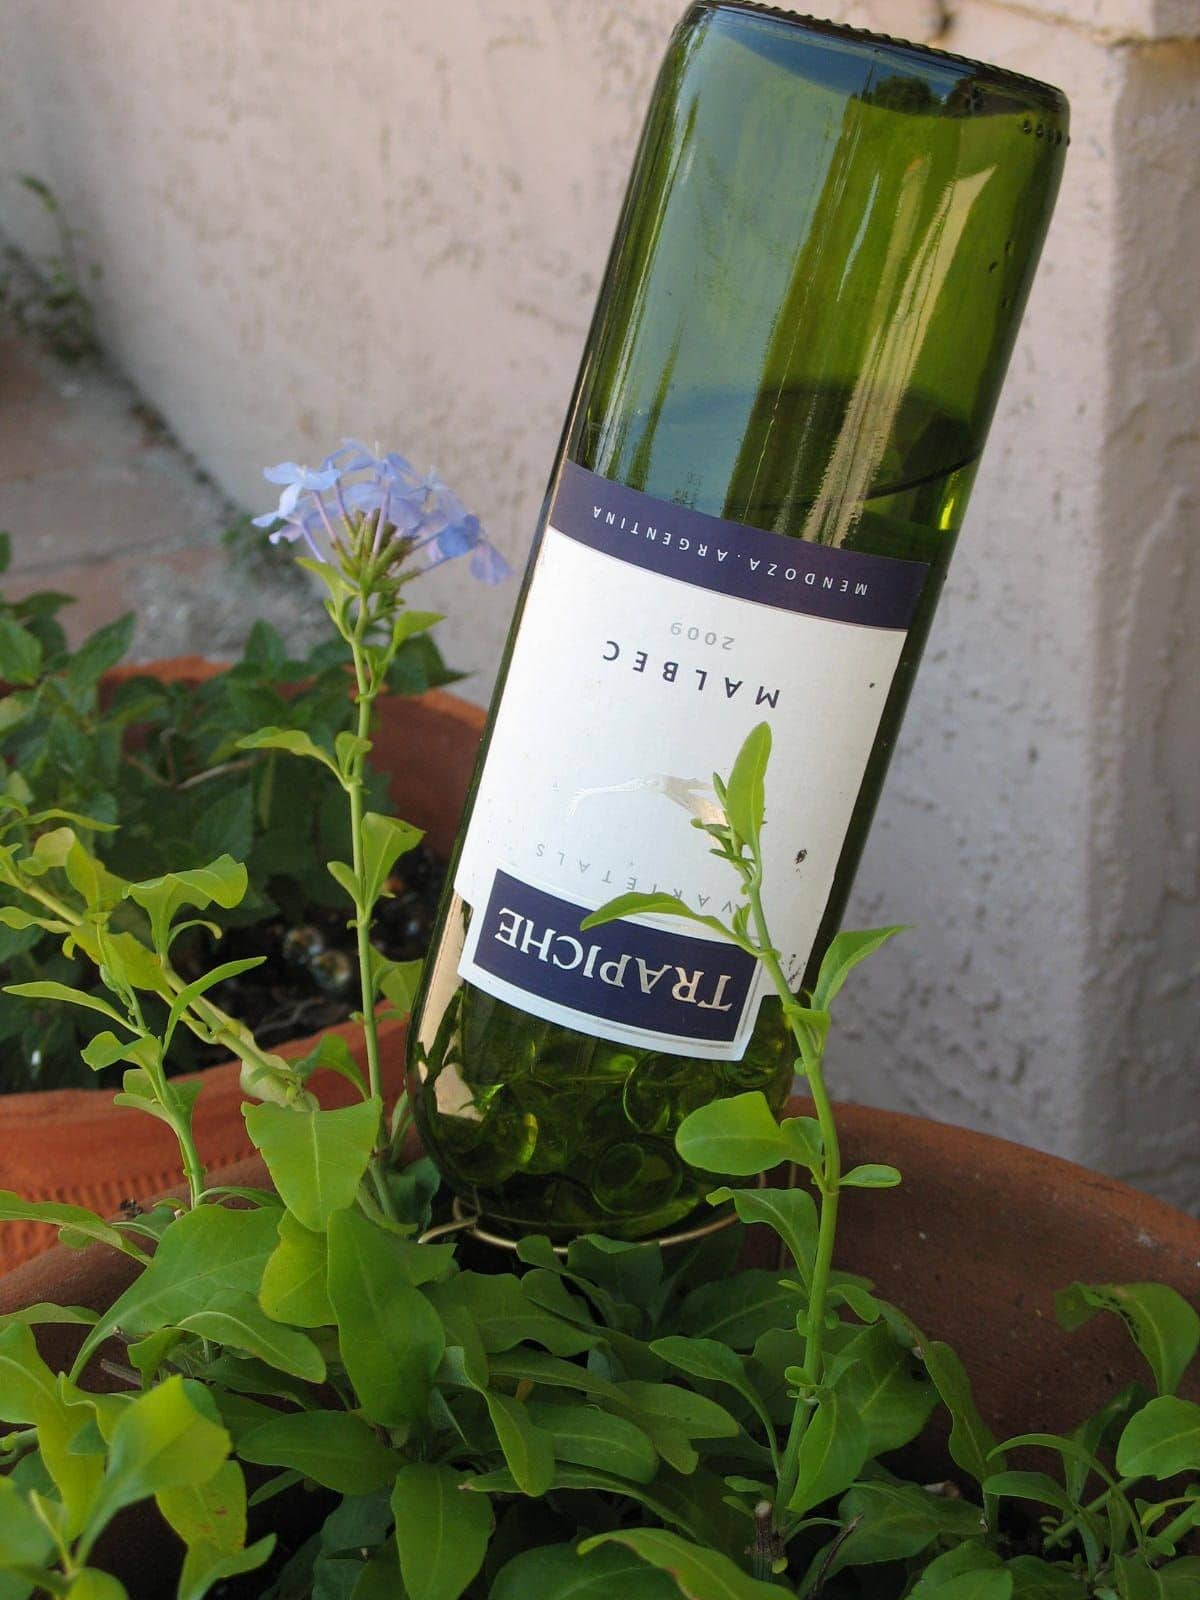 Automatic Plant Watering System - Diy self watering planter using a wine bottle